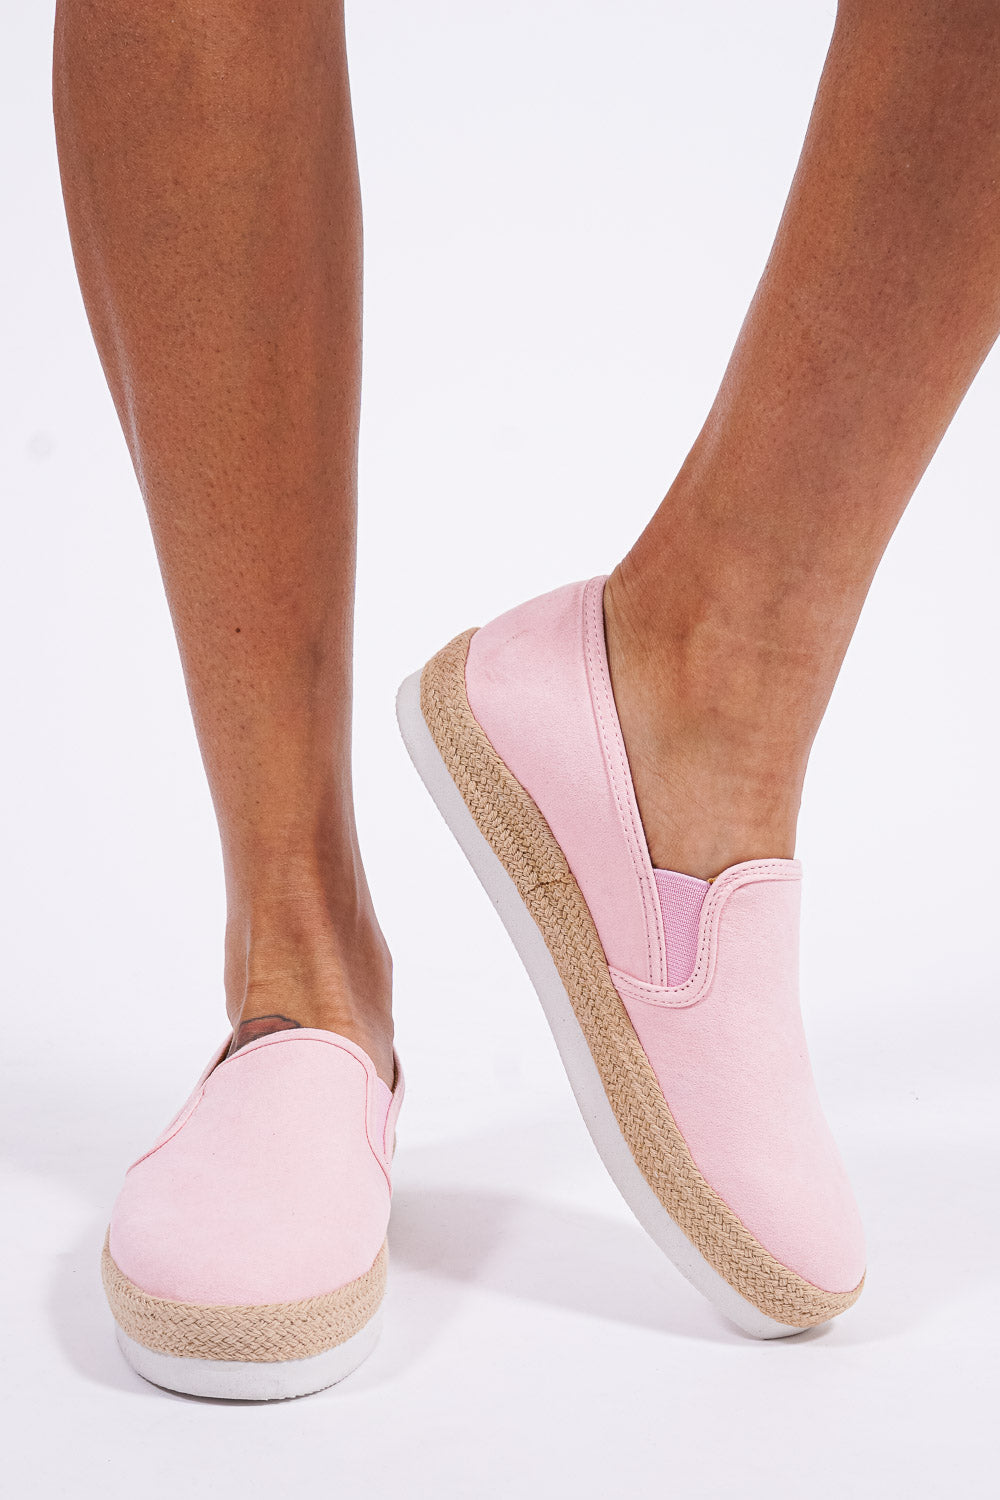 Manhattan deck shoes, pink